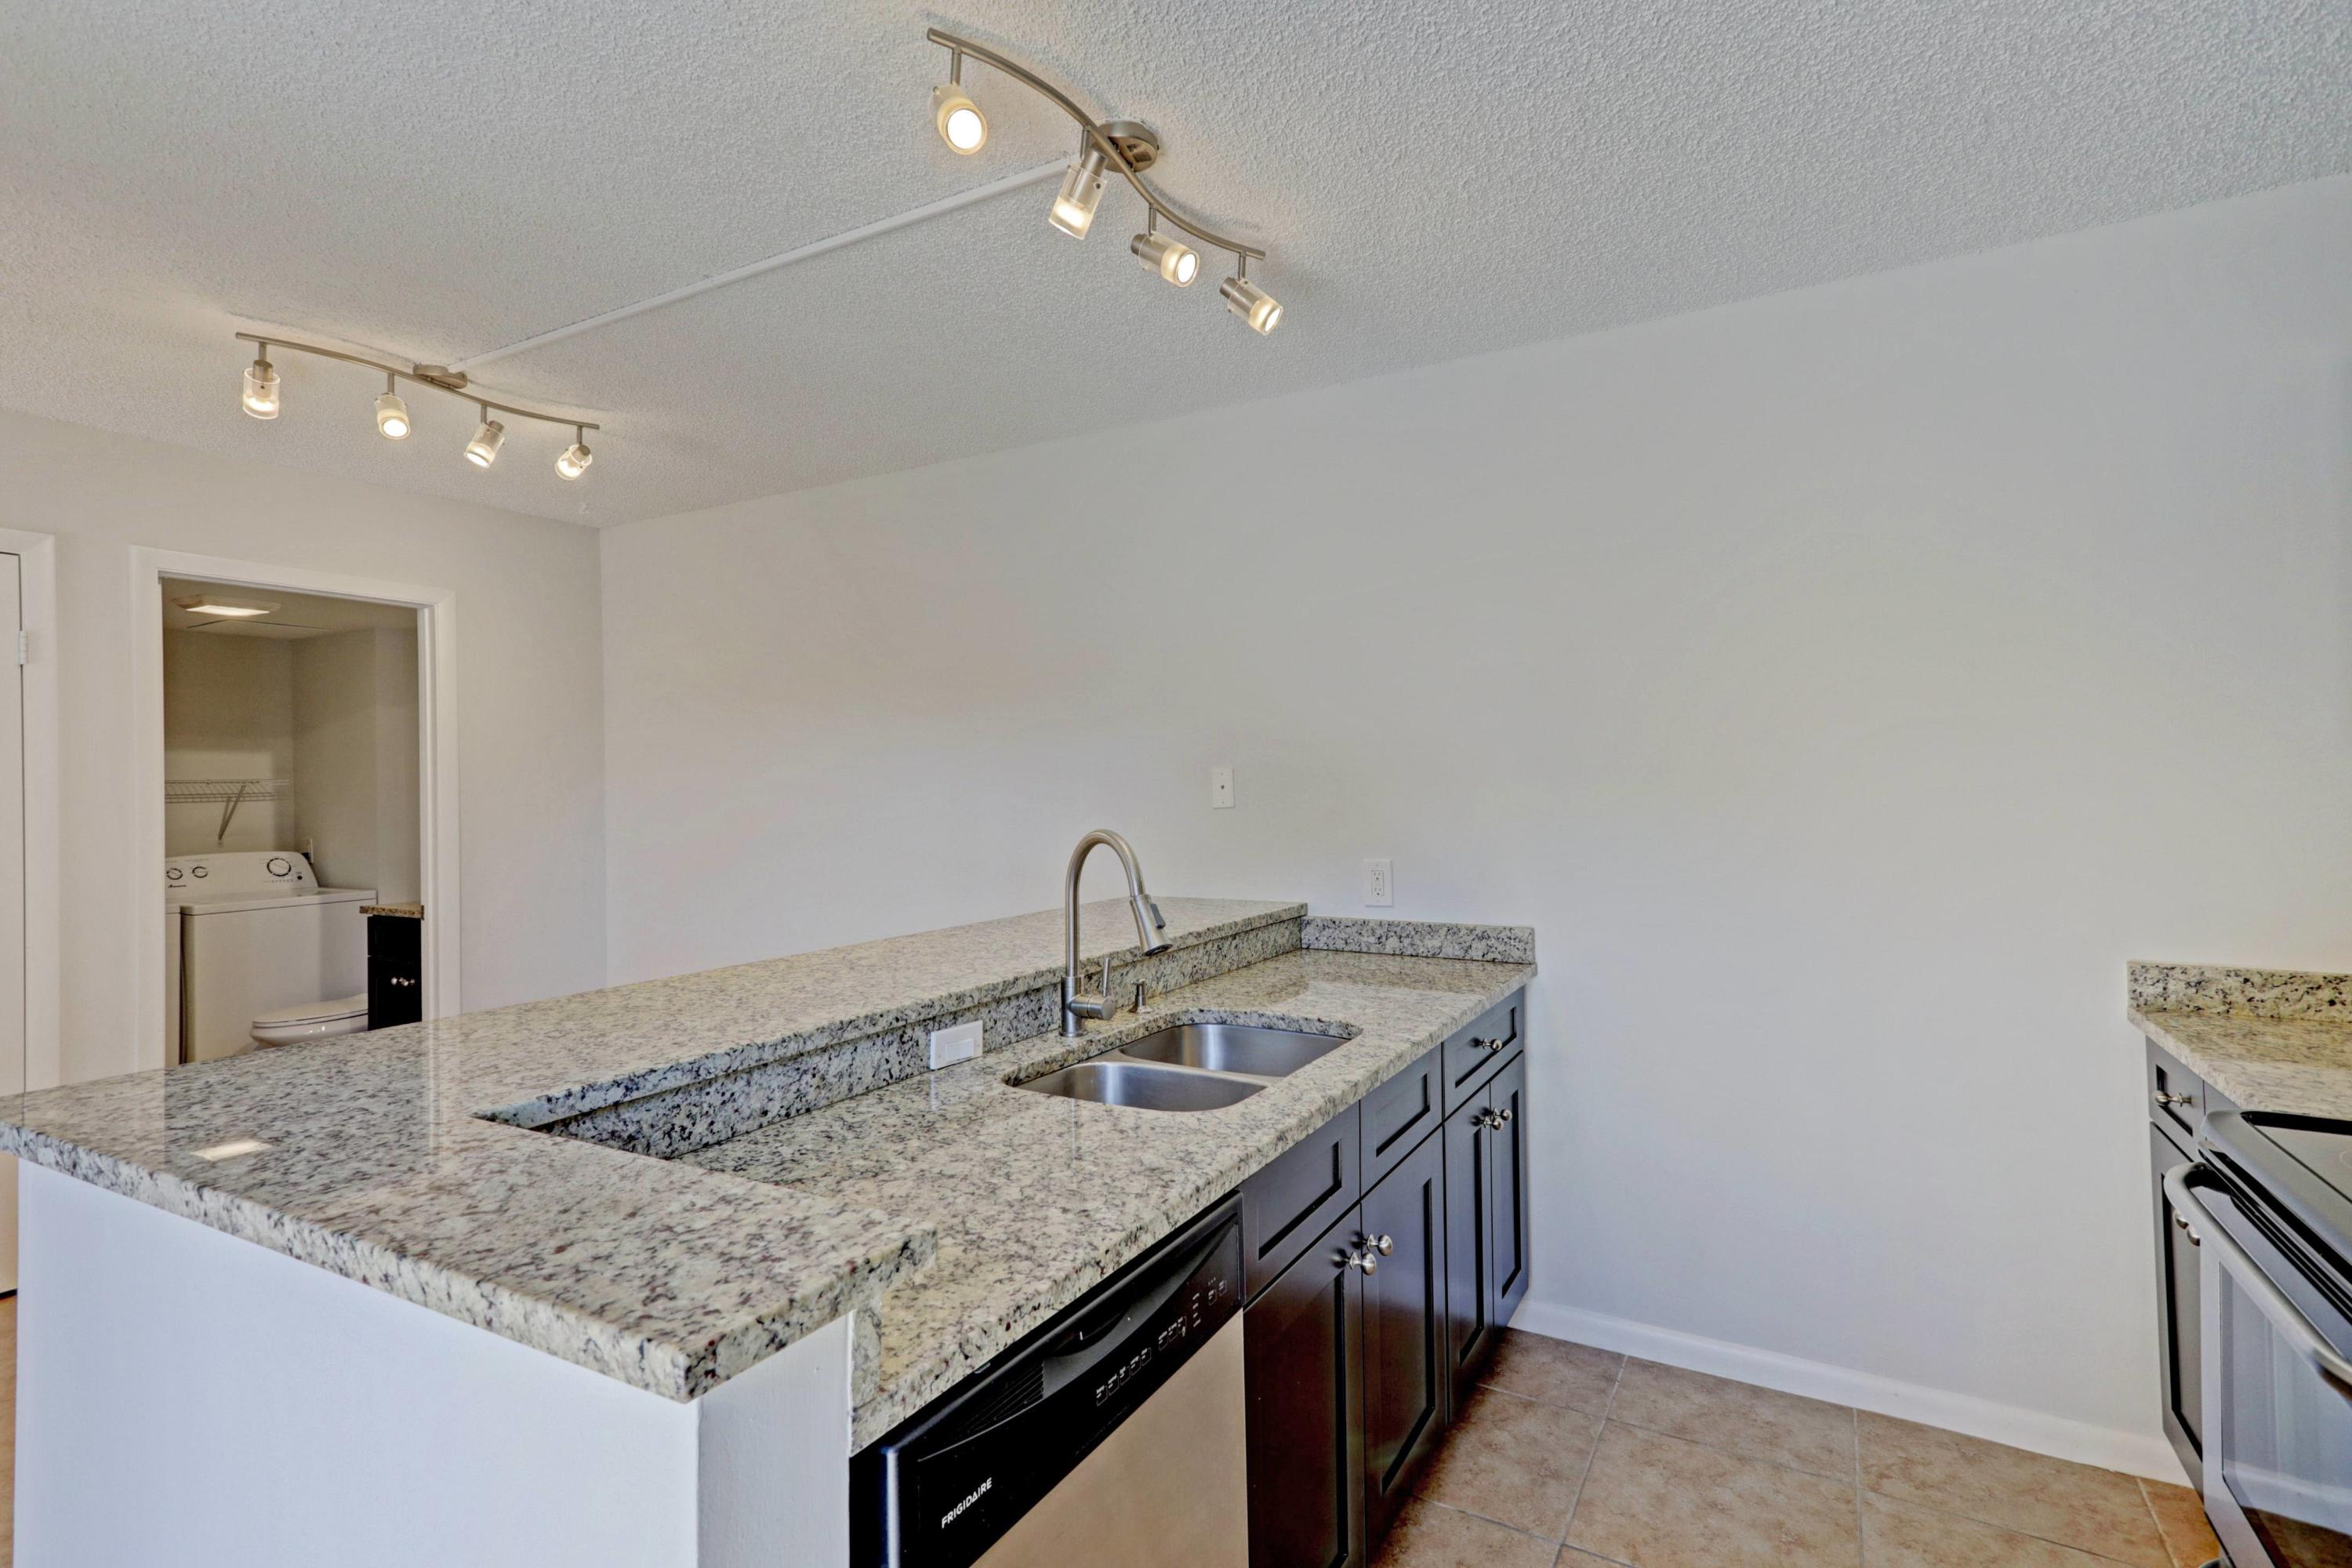 627  6th Way  For Sale 10711022, FL